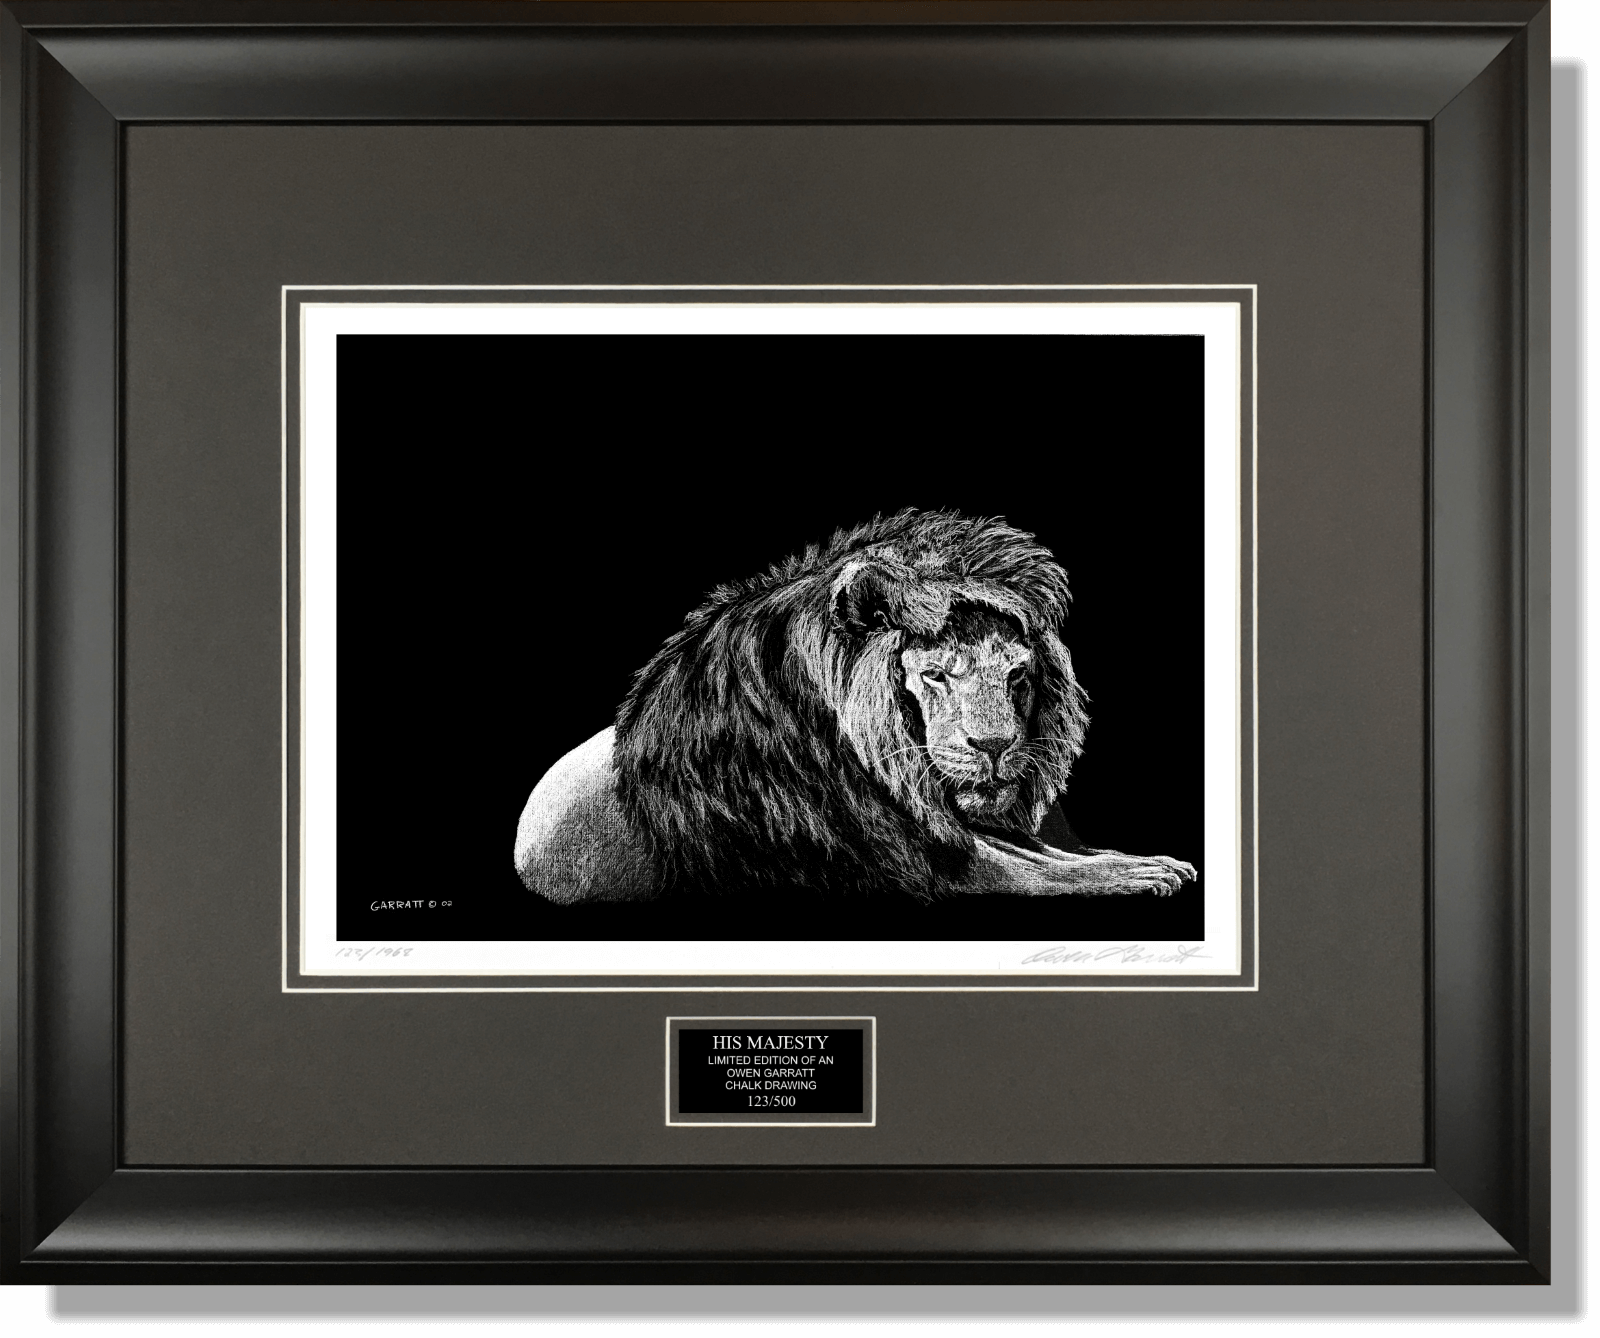 HIS MAJESTY - Wildlife art chalk art lion drawing by Owen Garratt framed